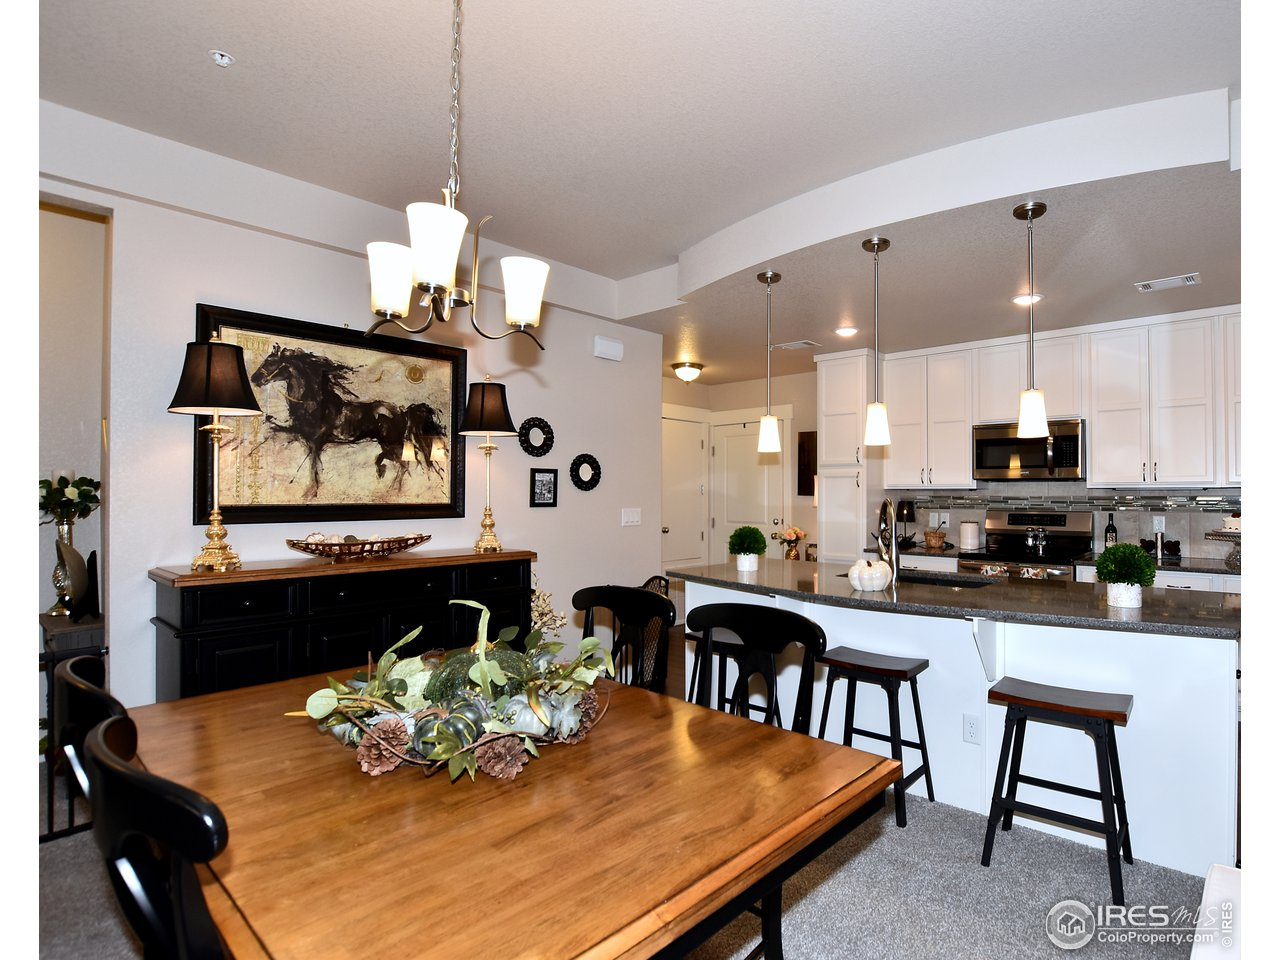 Designated dining space off kitchen